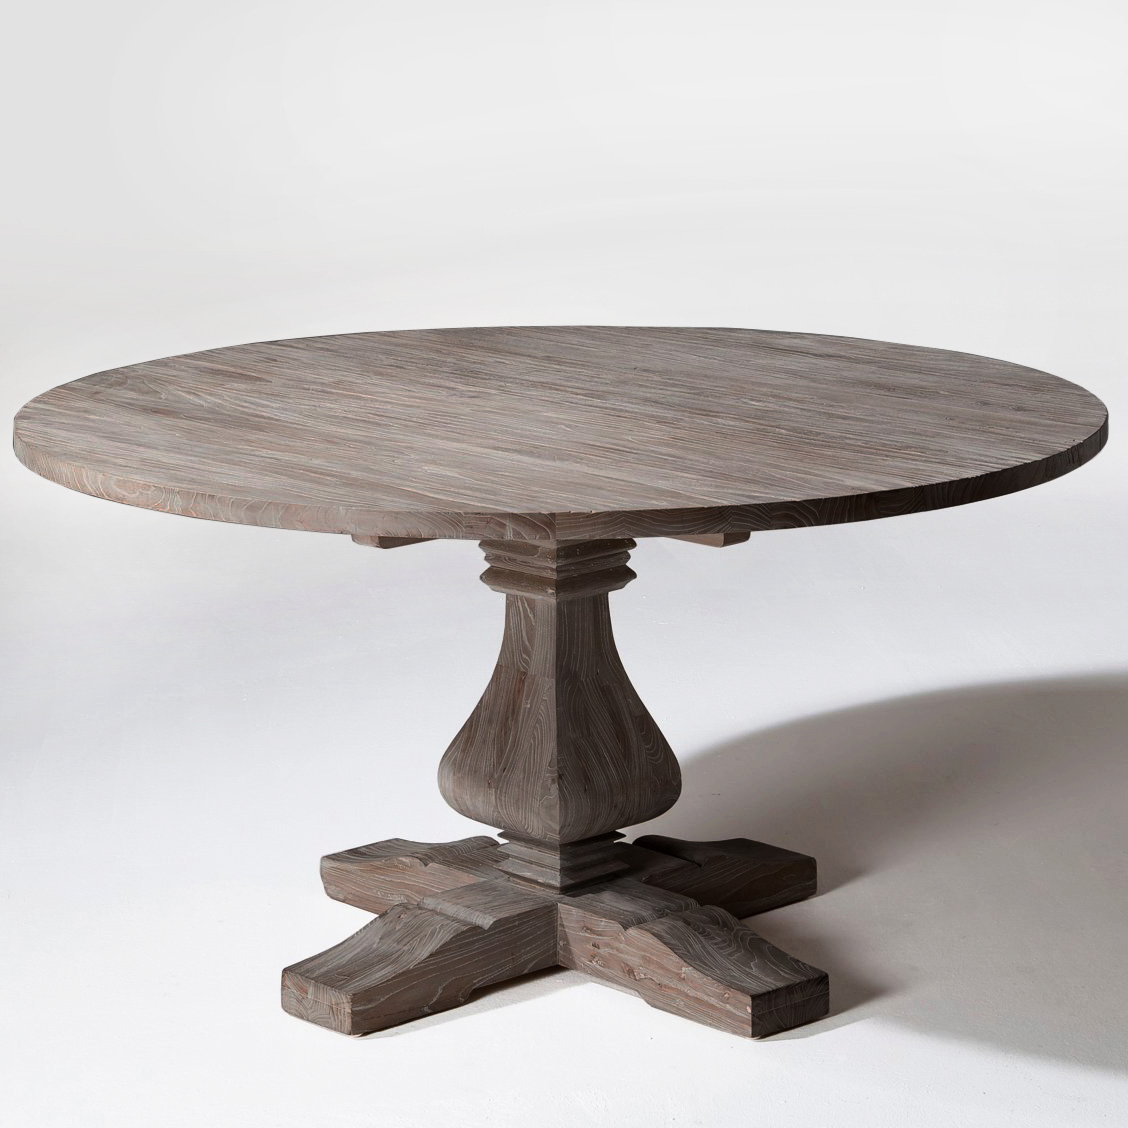 Round Wood Dining Table And Its Benefits – Home Decor Ideas Within Fashionable Small Round Dining Tables With Reclaimed Wood (View 8 of 25)